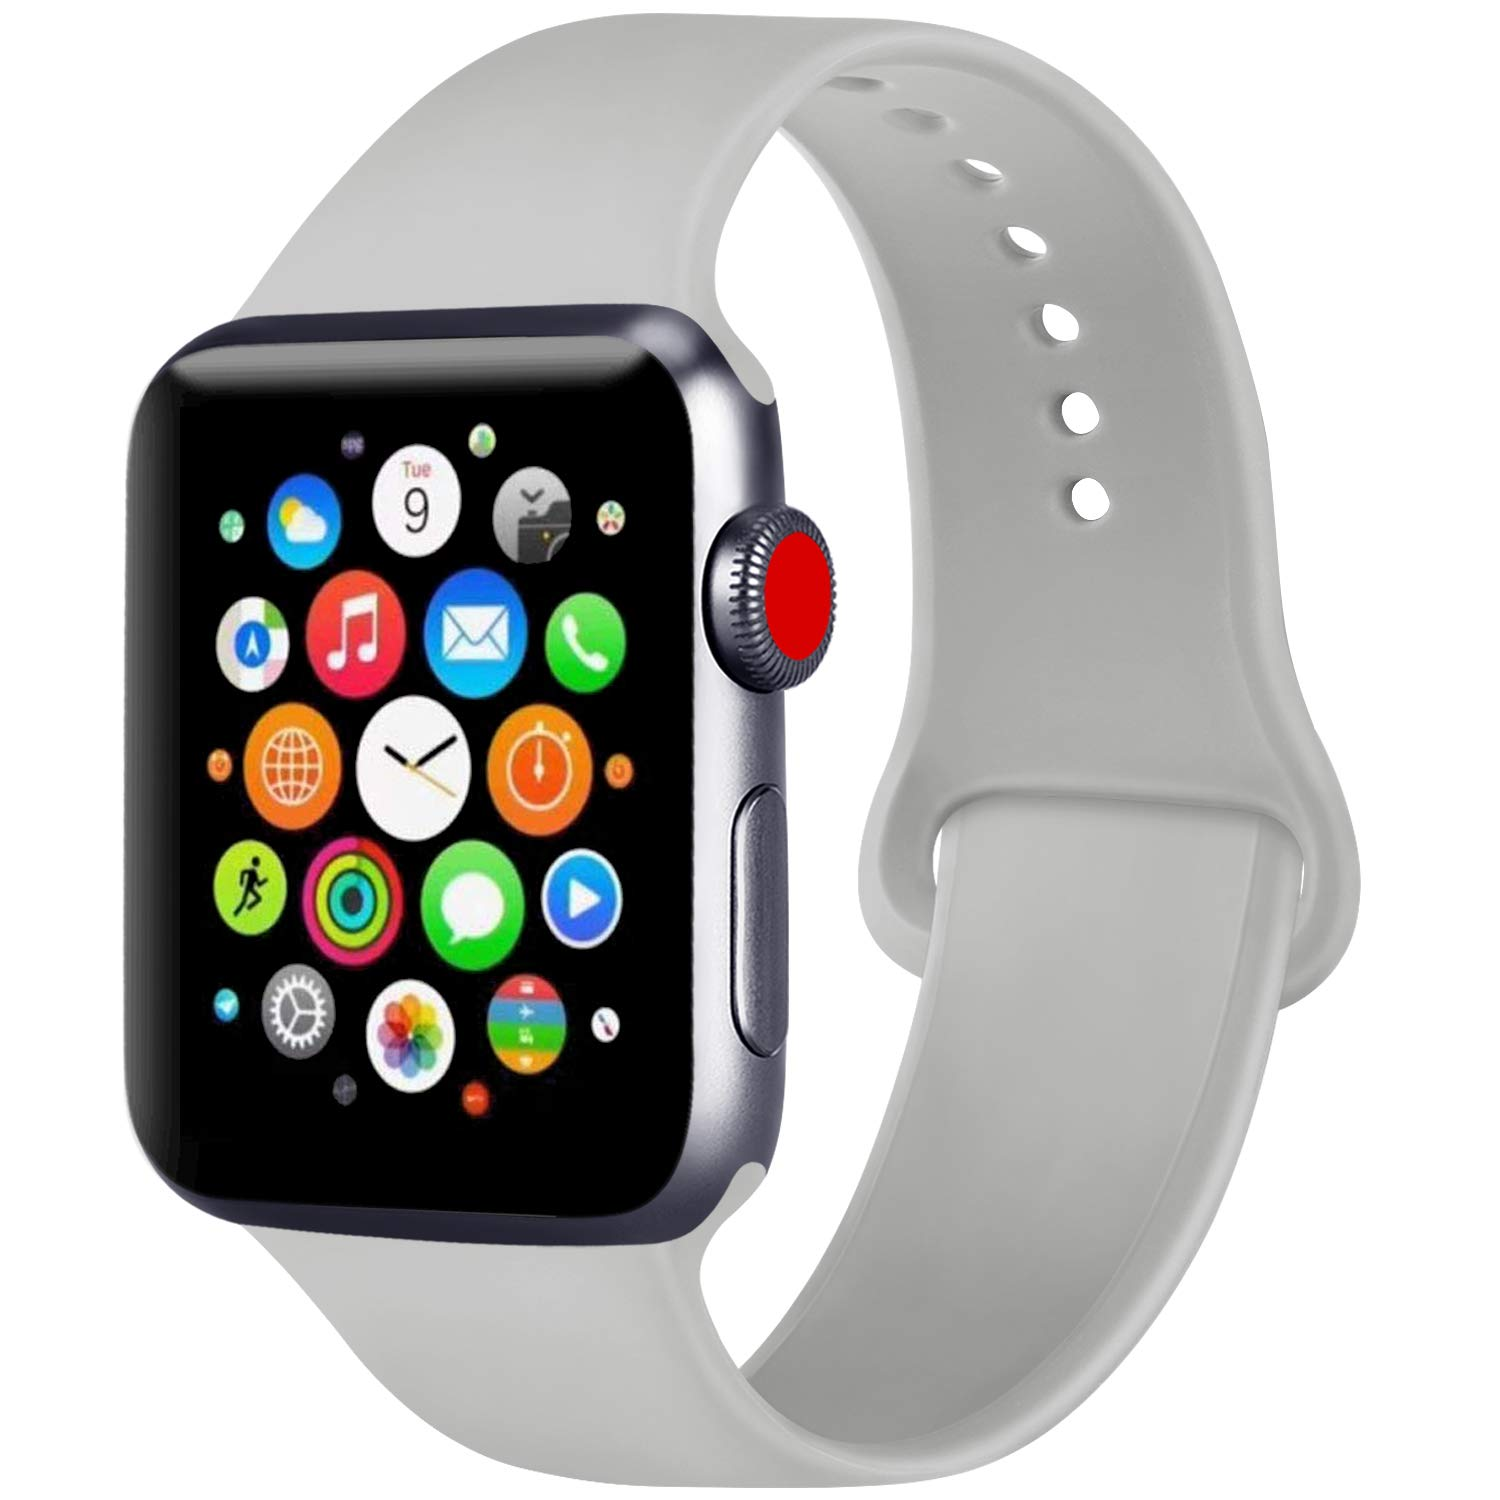 ATUP Correa Compatible con para Apple Watch Correa 38mm 42mm 40mm 44mm, Correa de Repuesto de